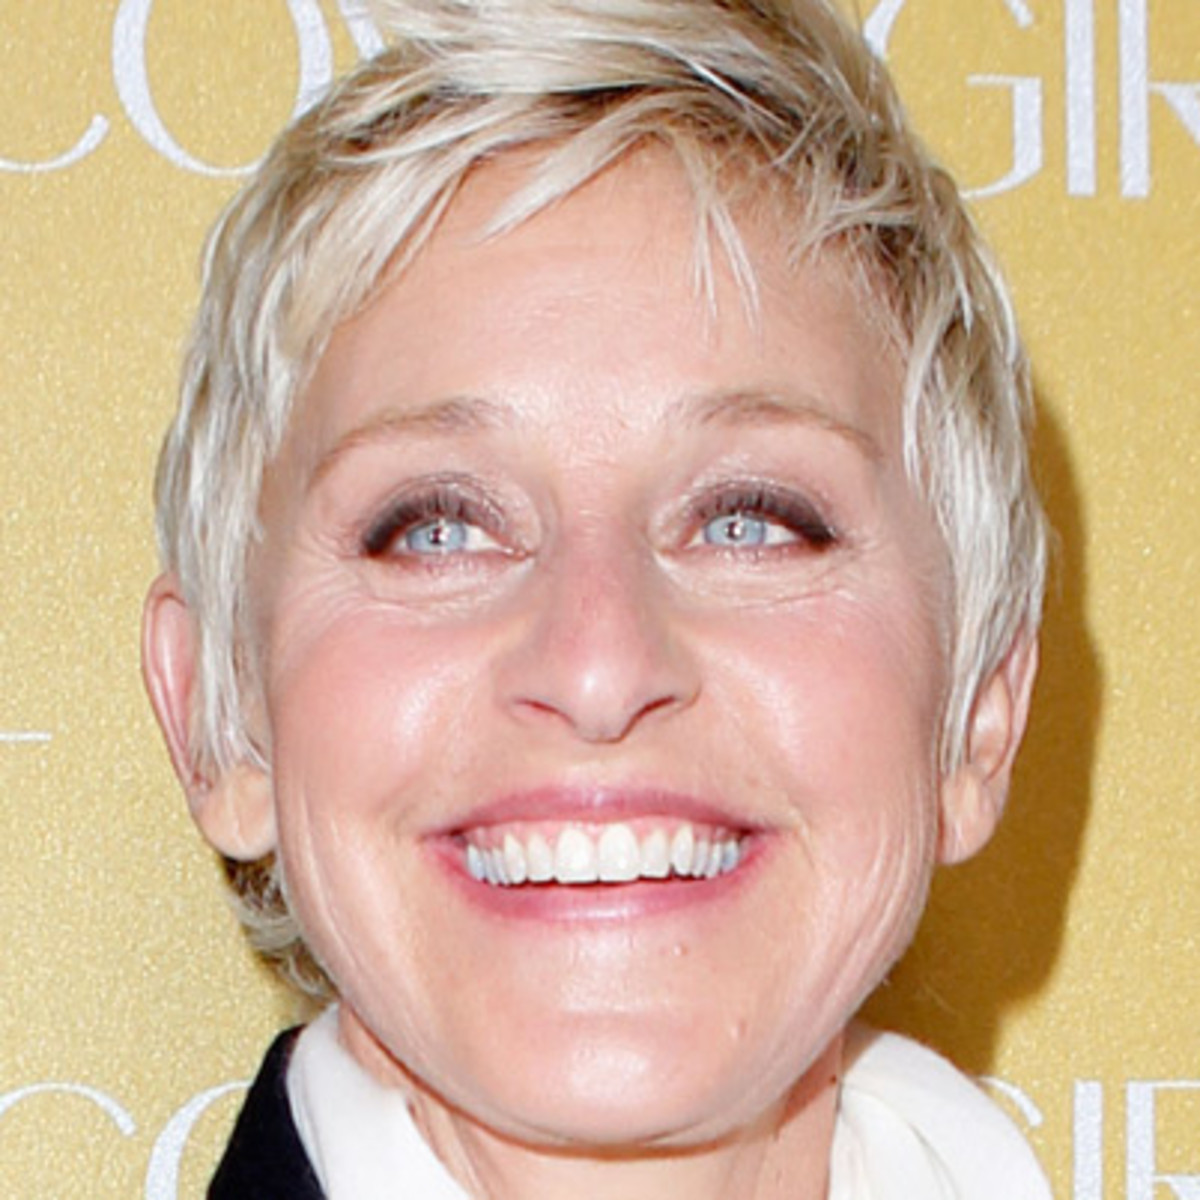 a biography of ellen degeneres Ellen degeneres: a biography: a biography - ebook written by lisa iannucci read this book using google play books app on your pc, android, ios devices download for offline reading.